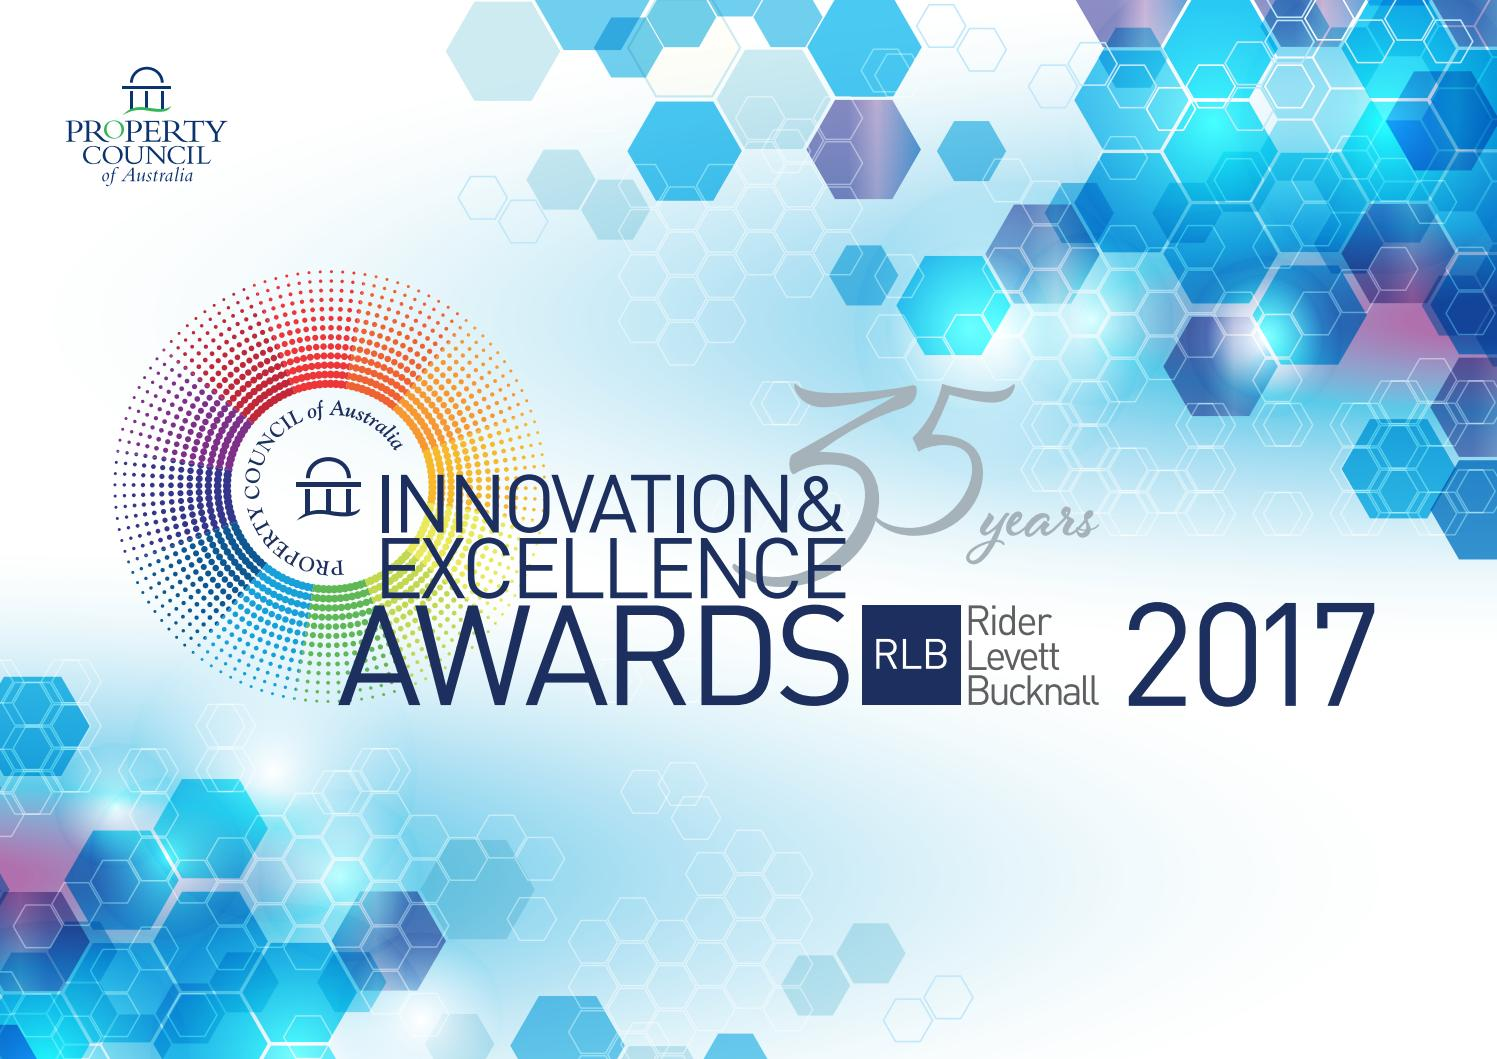 Rlb innovation excellence awards pca publication 2017 by nrm rlb innovation excellence awards pca publication 2017 by nrm custom publishing issuu malvernweather Choice Image